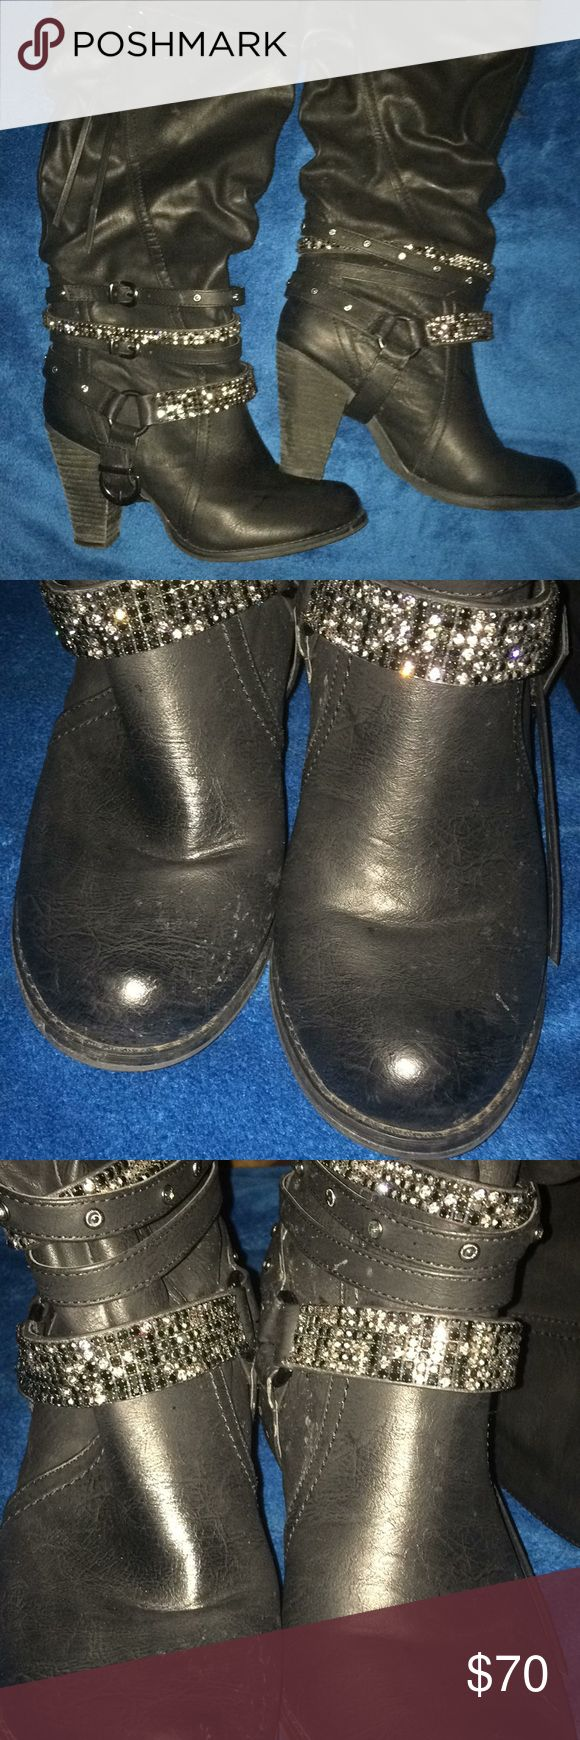 Thigh high Cowboy boots Black Super cute Knee high 🤠 inspired boots with Rhinestones. The pics doesn't do these babies justice. No scuffs, a little wear on sole but overall New like condition. Come get em. These babies won't last at this price. The best Posh has to offer. Shoes Winter & Rain Boots #babyrainboots